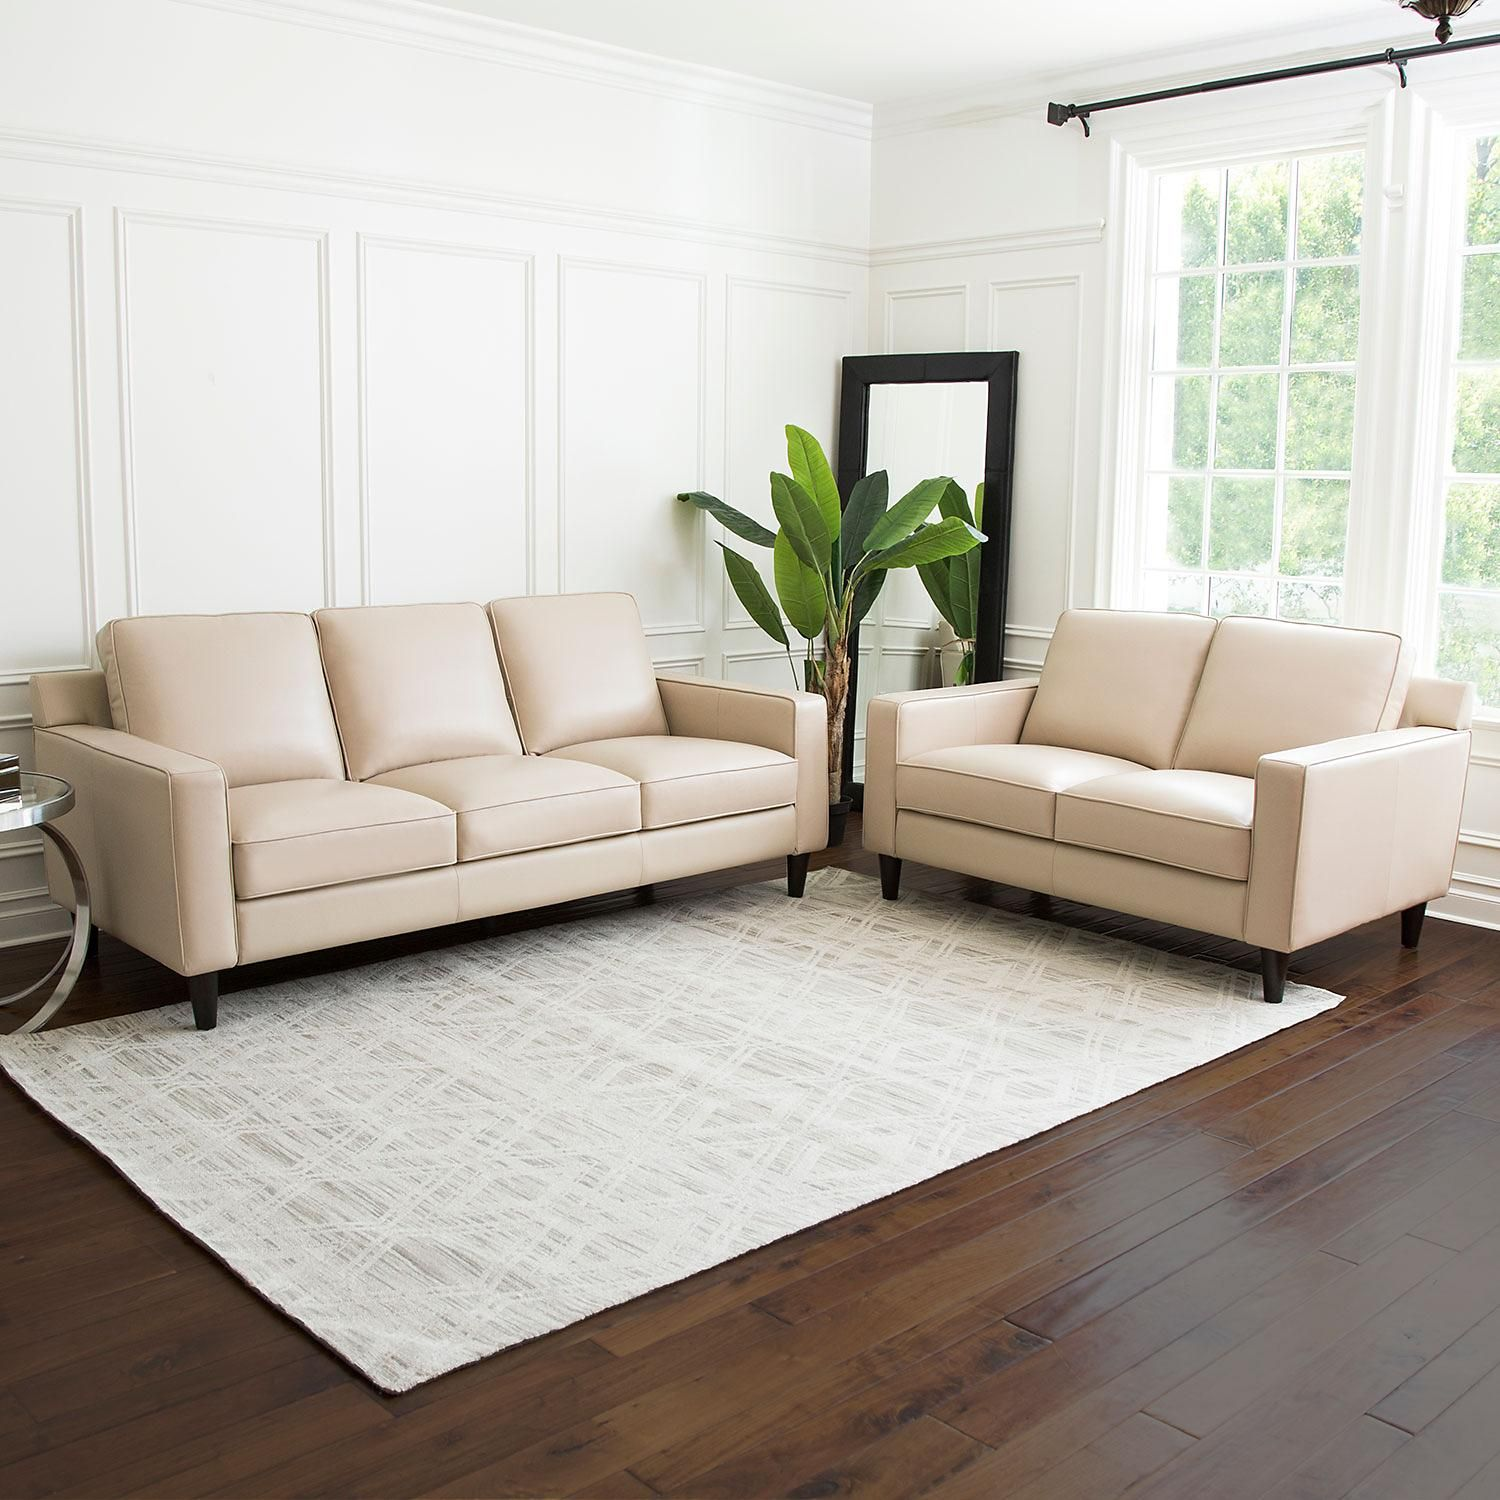 Kennedy Top Grain Leather Loveseat And Sofa Gray Or Cream Sam S Club Leather Living Room Set Living Room Leather Living Room Sets #sams #living #room #furniture